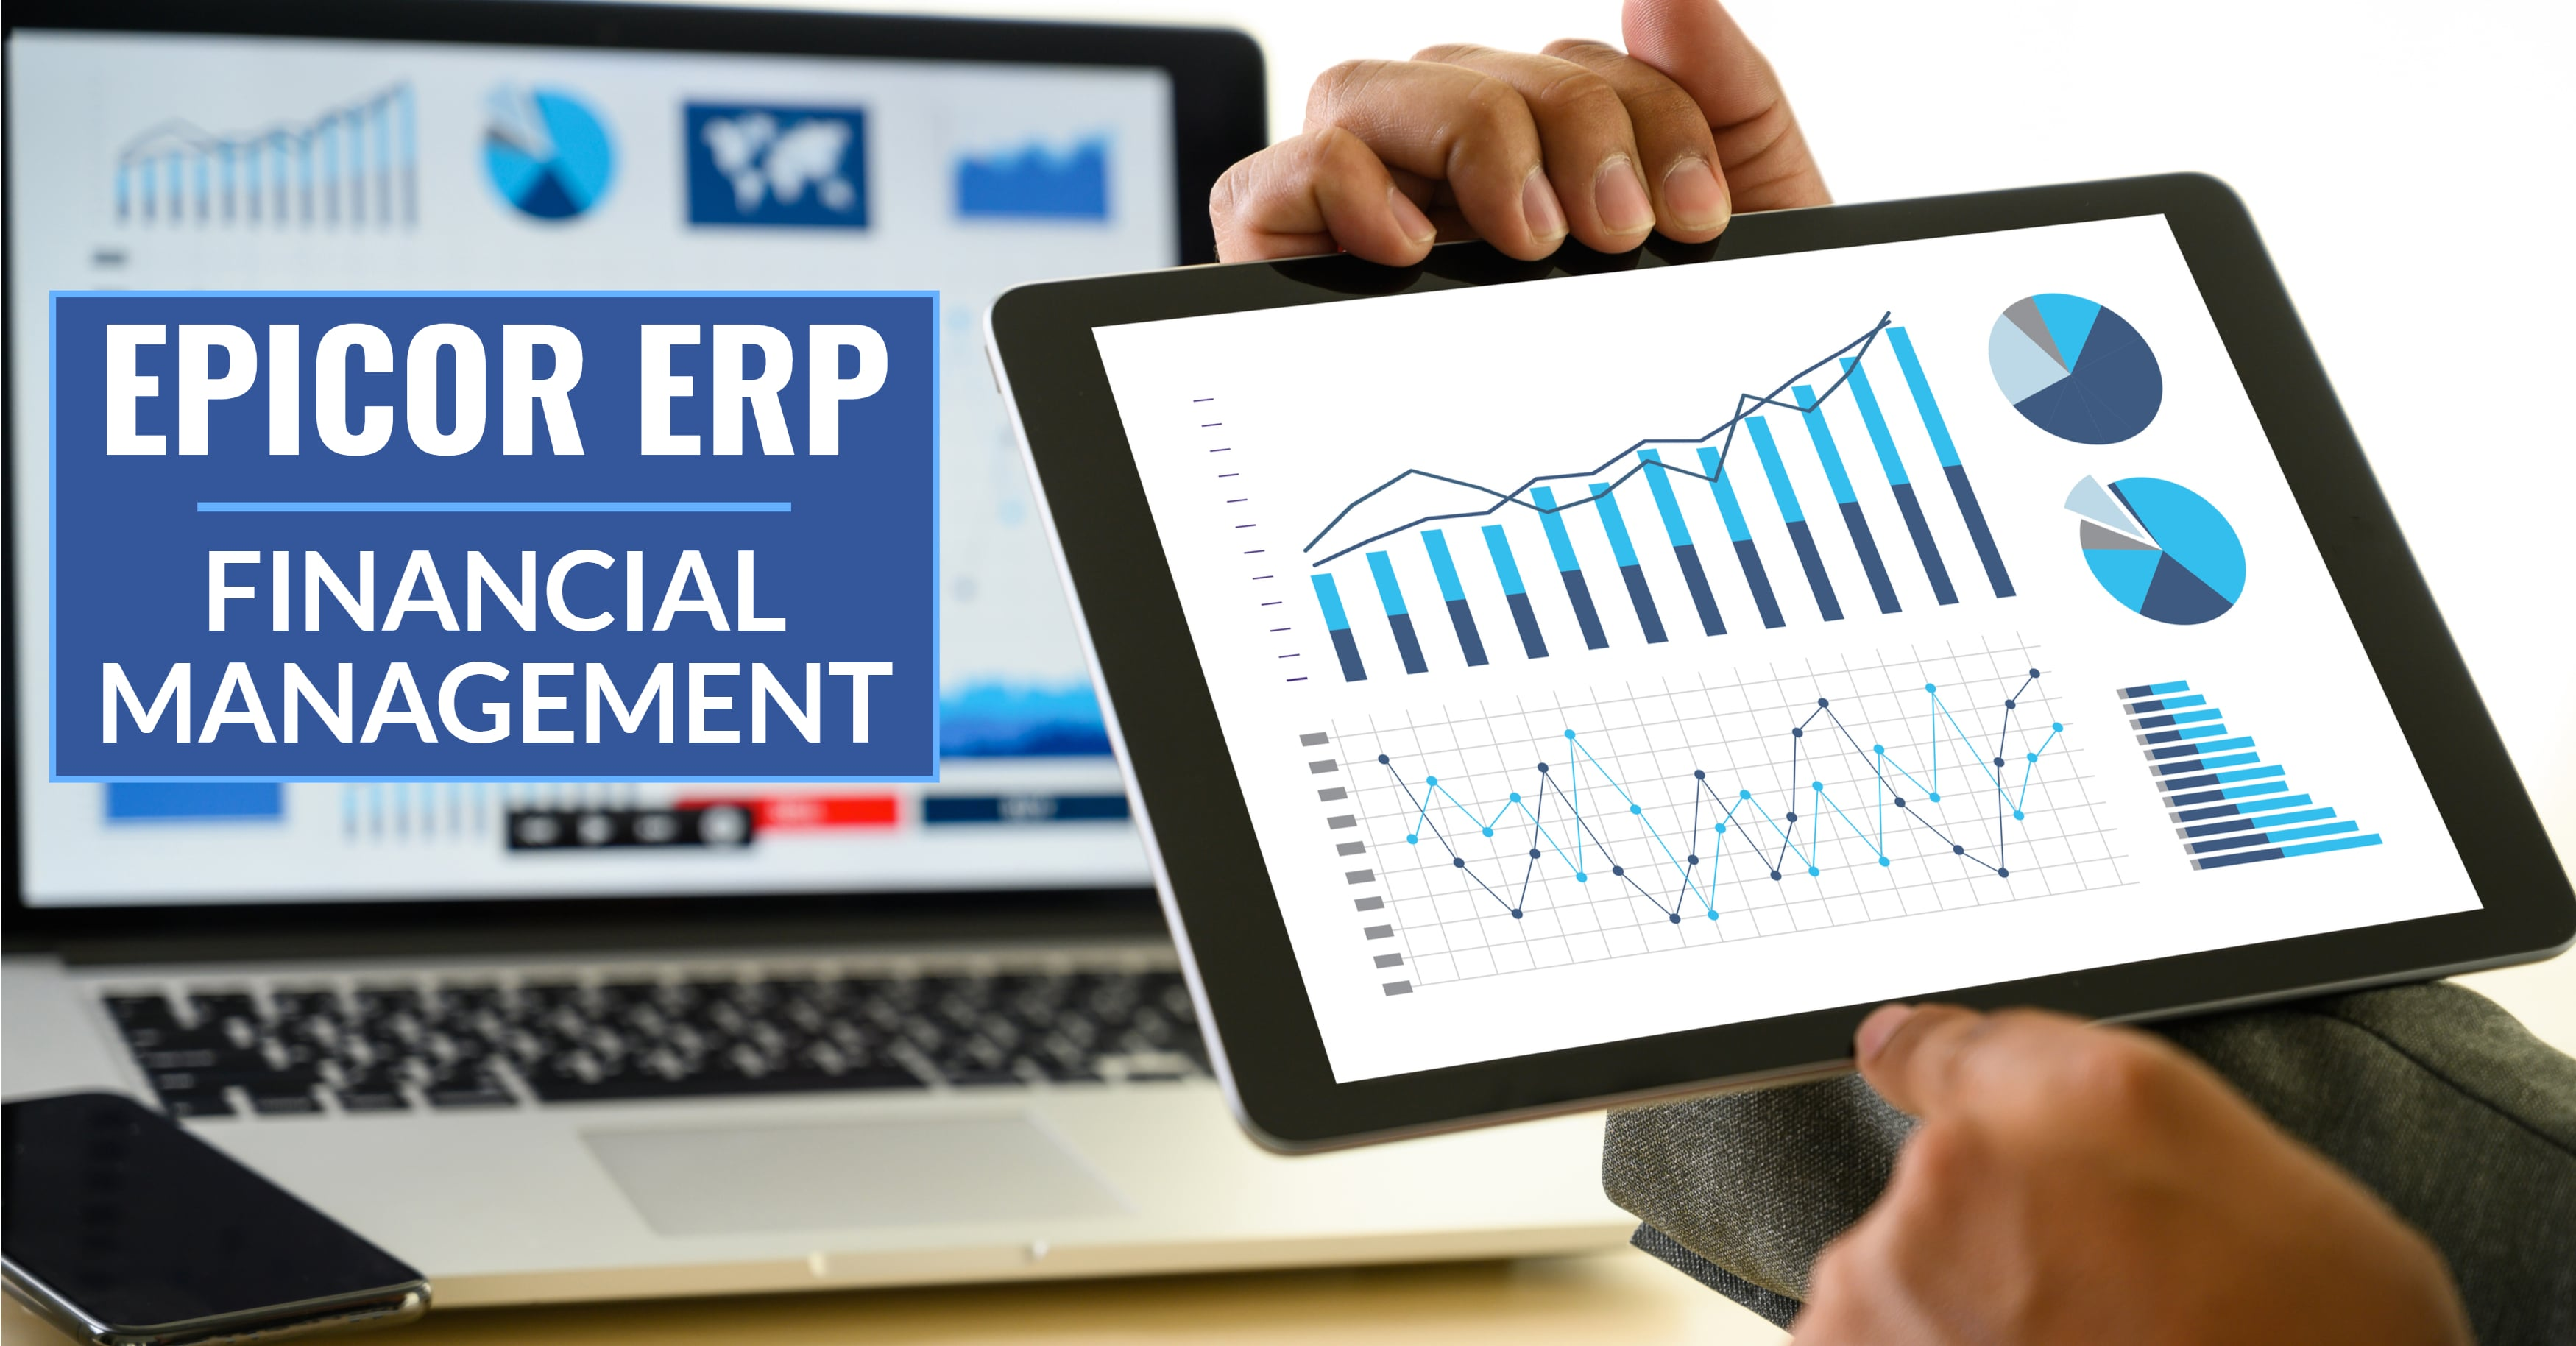 Get the Financial Management You Need With Epicor ERP